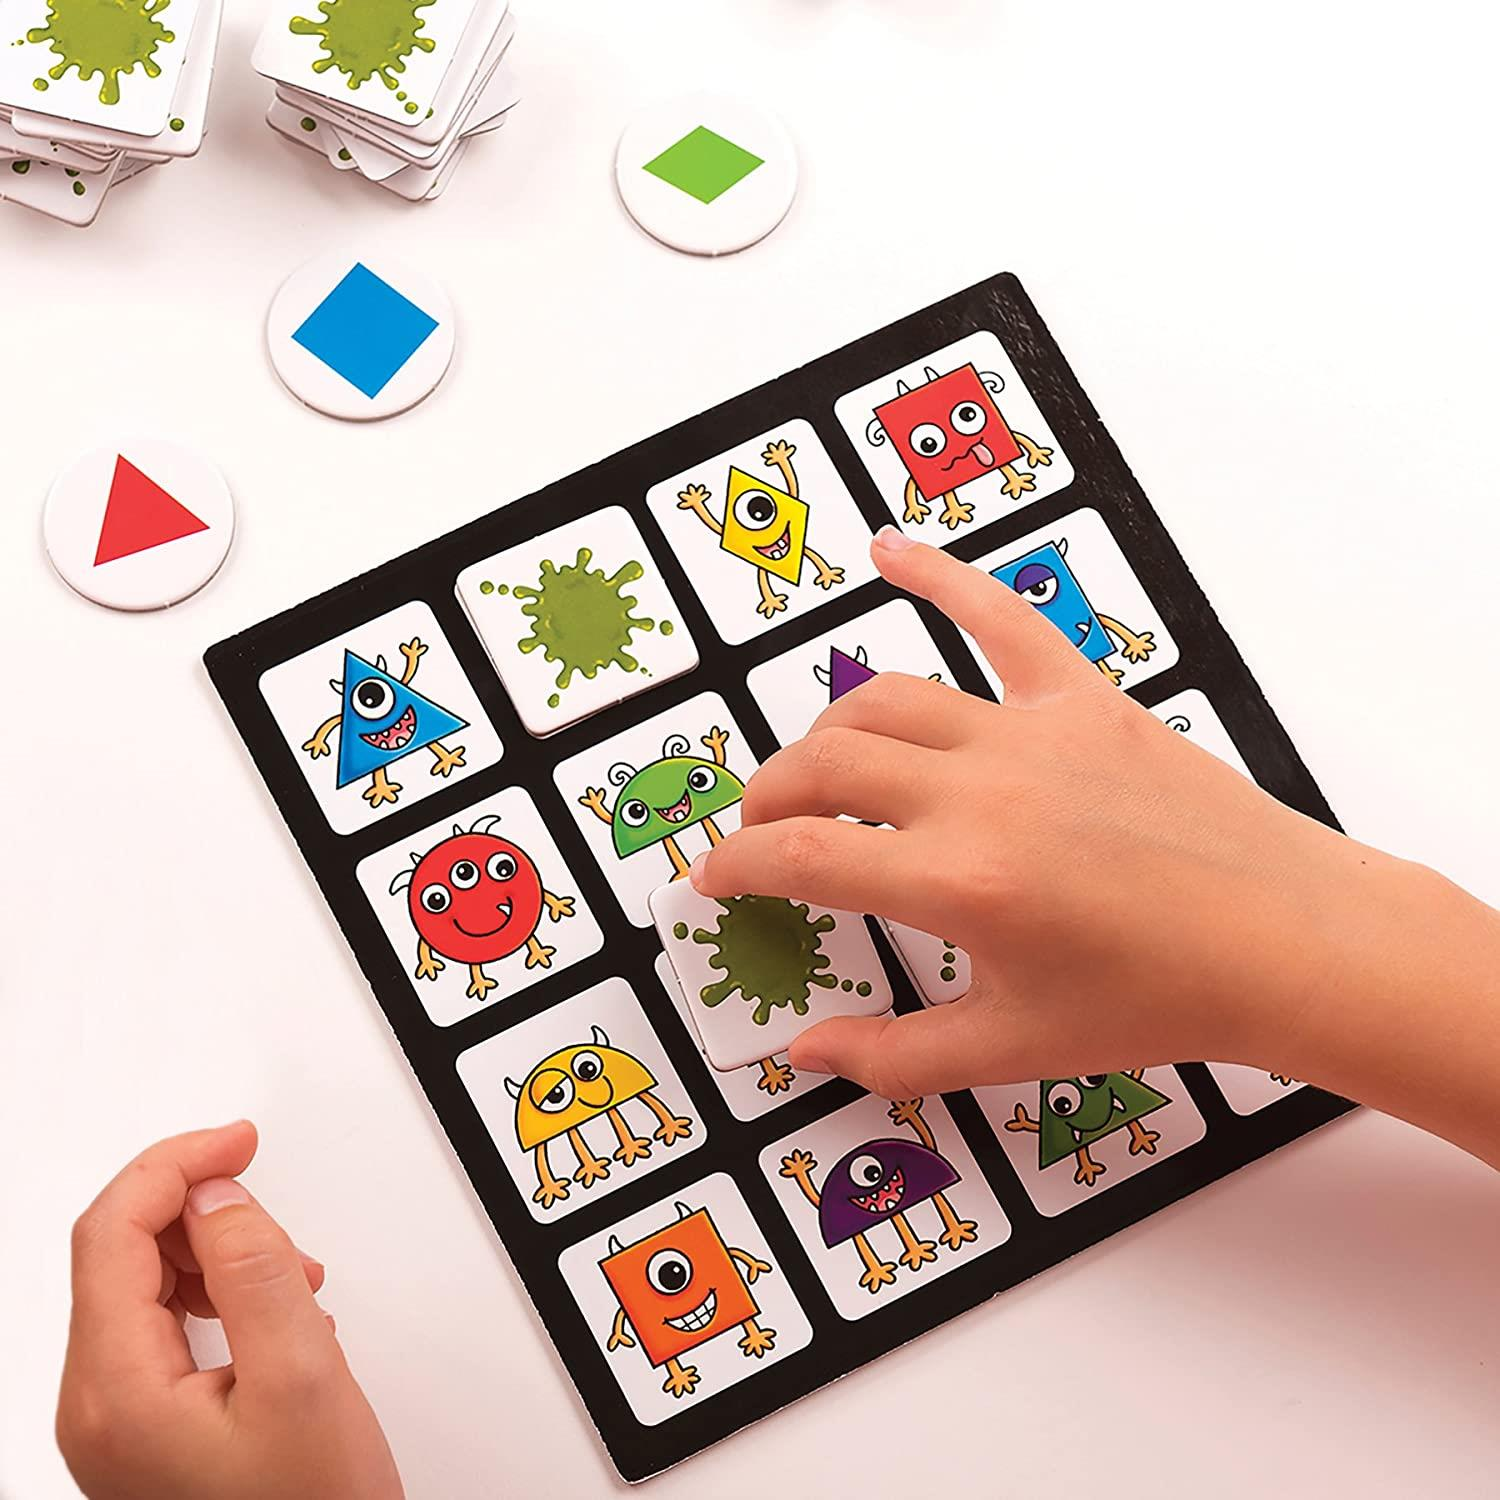 thumbnail 187 - Orchard Toys Educational Games For Kids Choose Game From Drop Down Menu